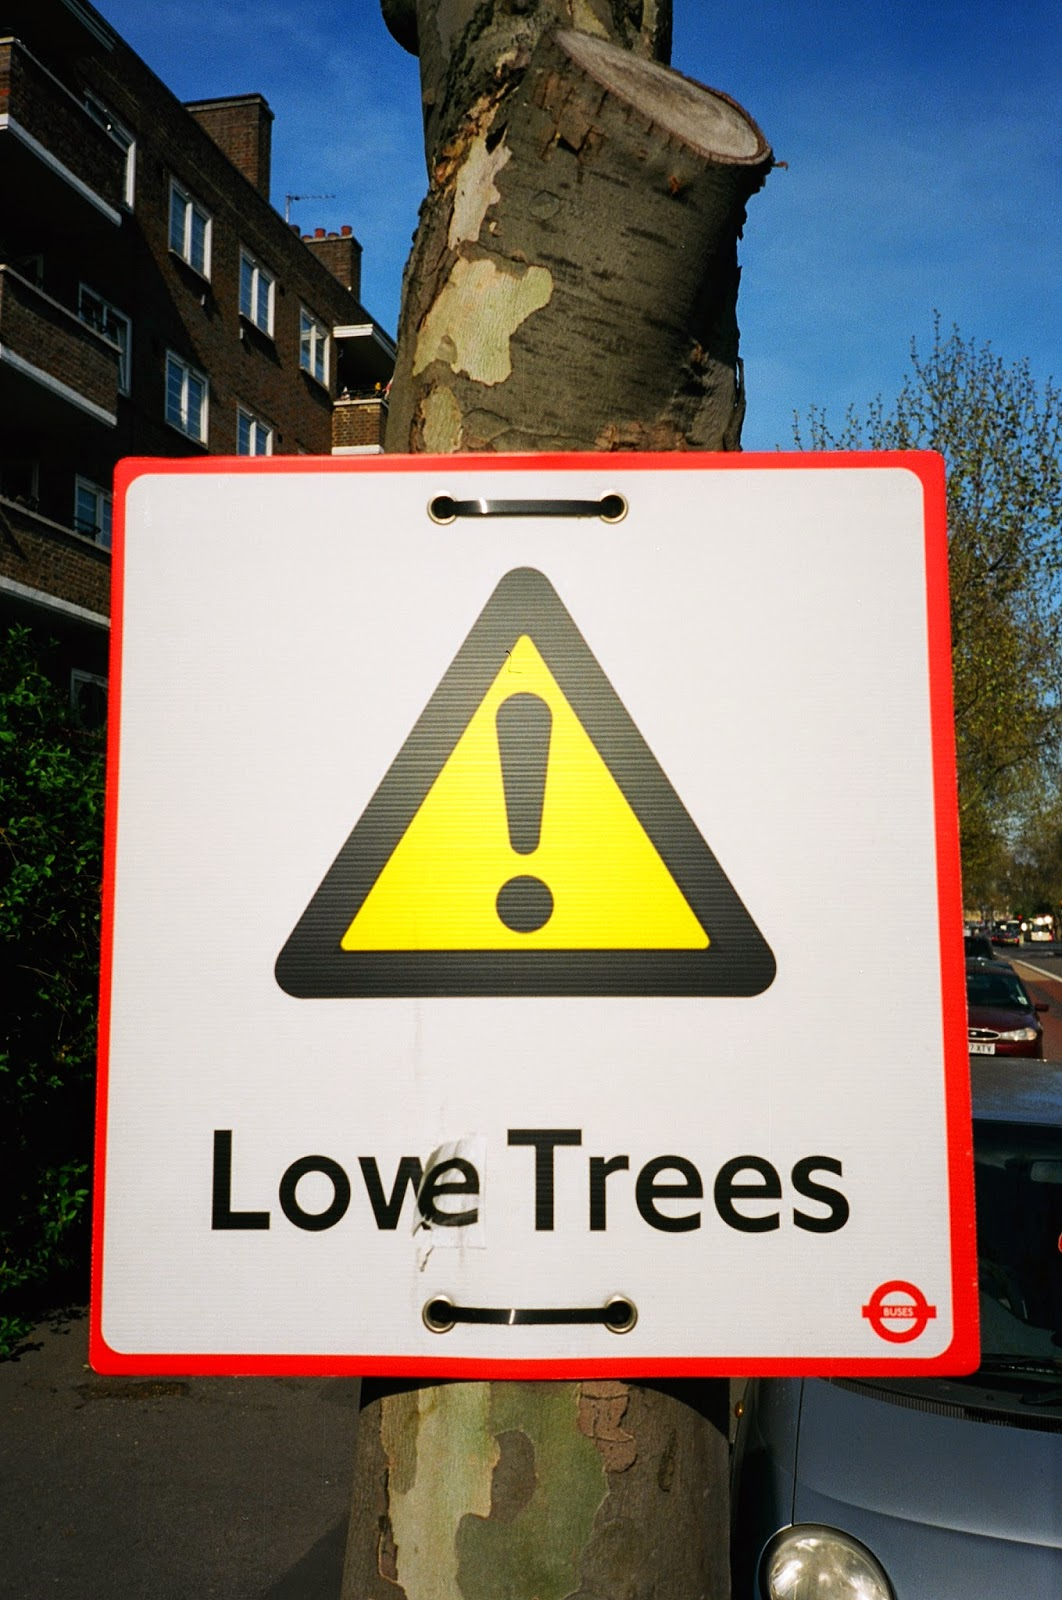 WARNING SIGNS, SUBVERSION, TRANSPORT FOR LONDON, GRAFFITI, LONDON PLAIN TREES, TREE PRUNING, LAMBETH WALK, LAMBETH RAOD, WATERLOO, LONDON © VAC 100 DAYS / 4  MILLION CONVERSATIONS